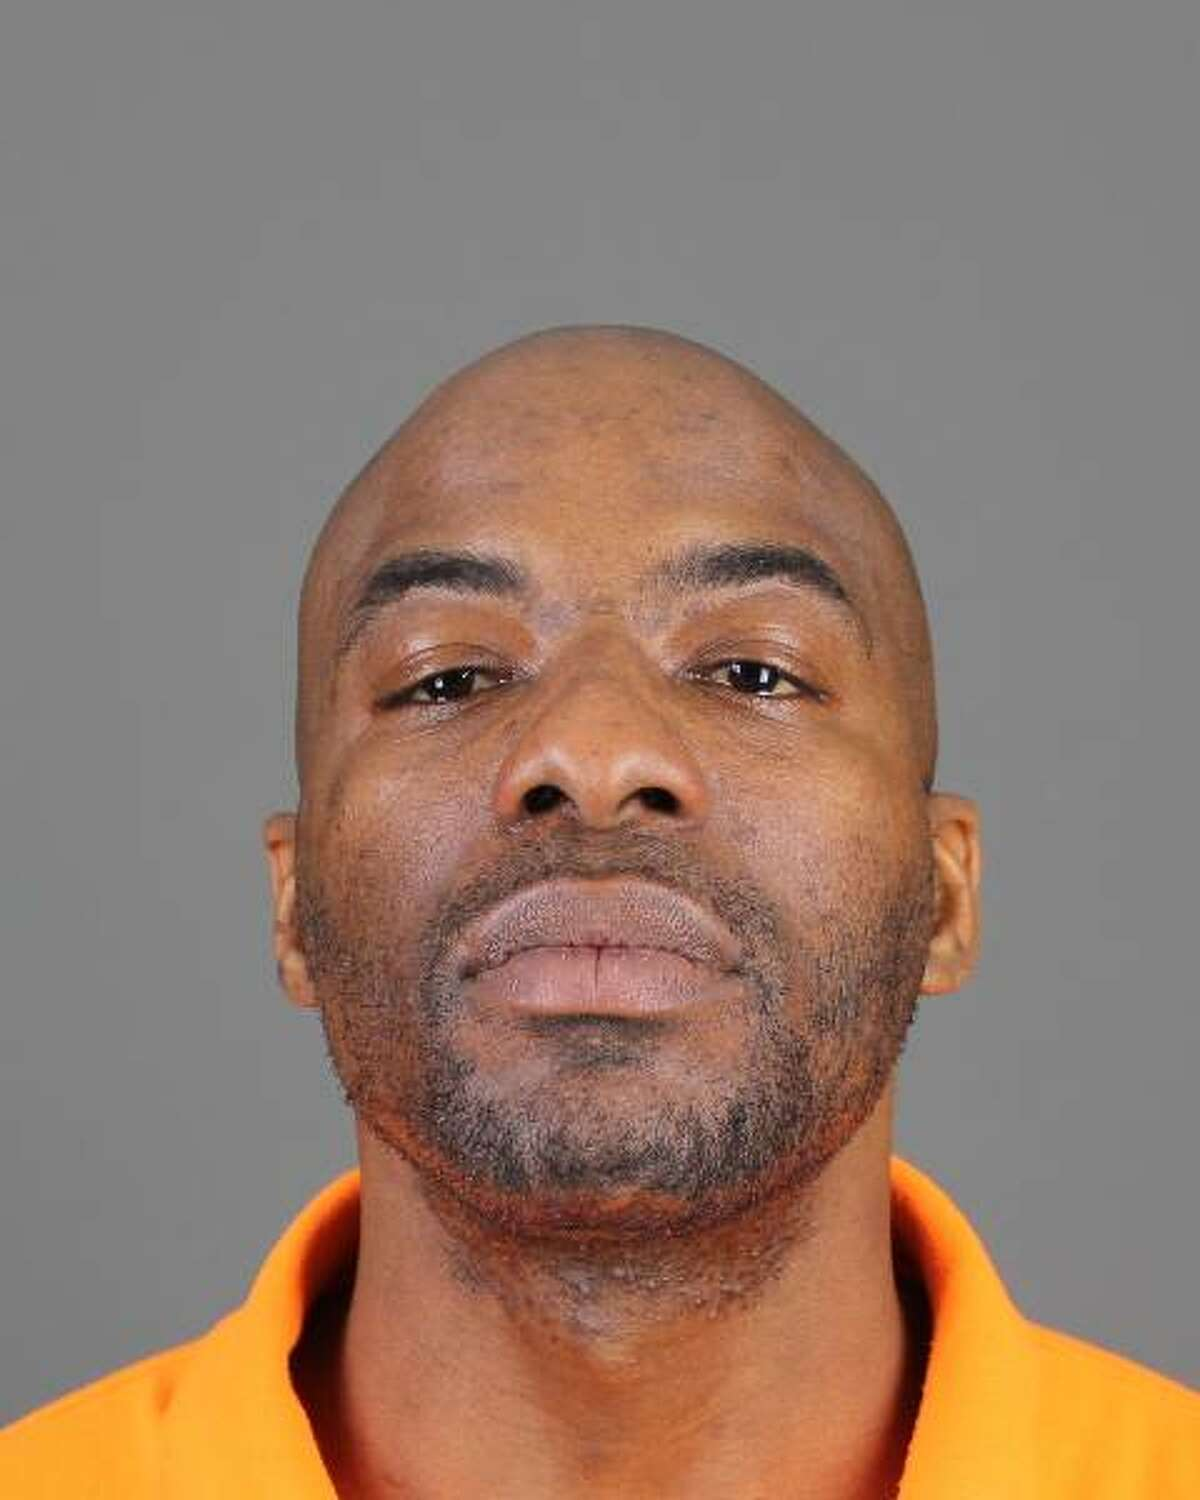 Lee Williams is charged with second-degree murder after an investigation into a January slaying at Lincoln Square, Albany.